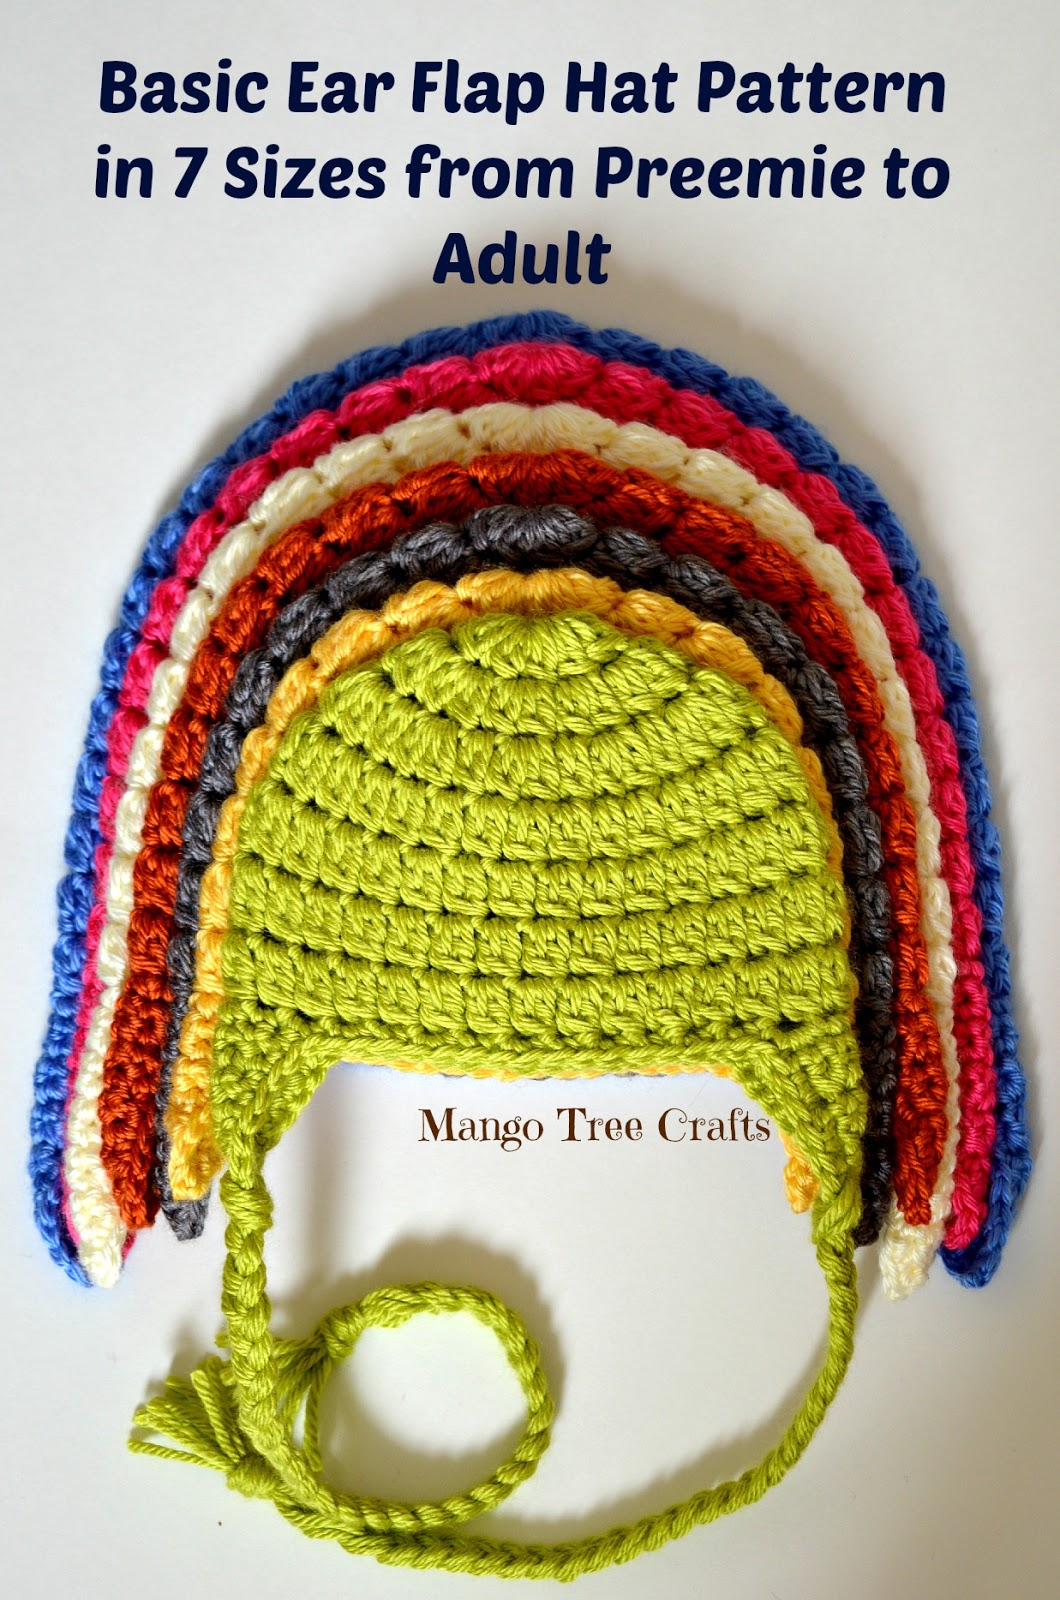 Free Crochet Pattern Earflap Beanie : Mango Tree Crafts: Basic Crochet Ear Flap Hat Pattern in 7 ...